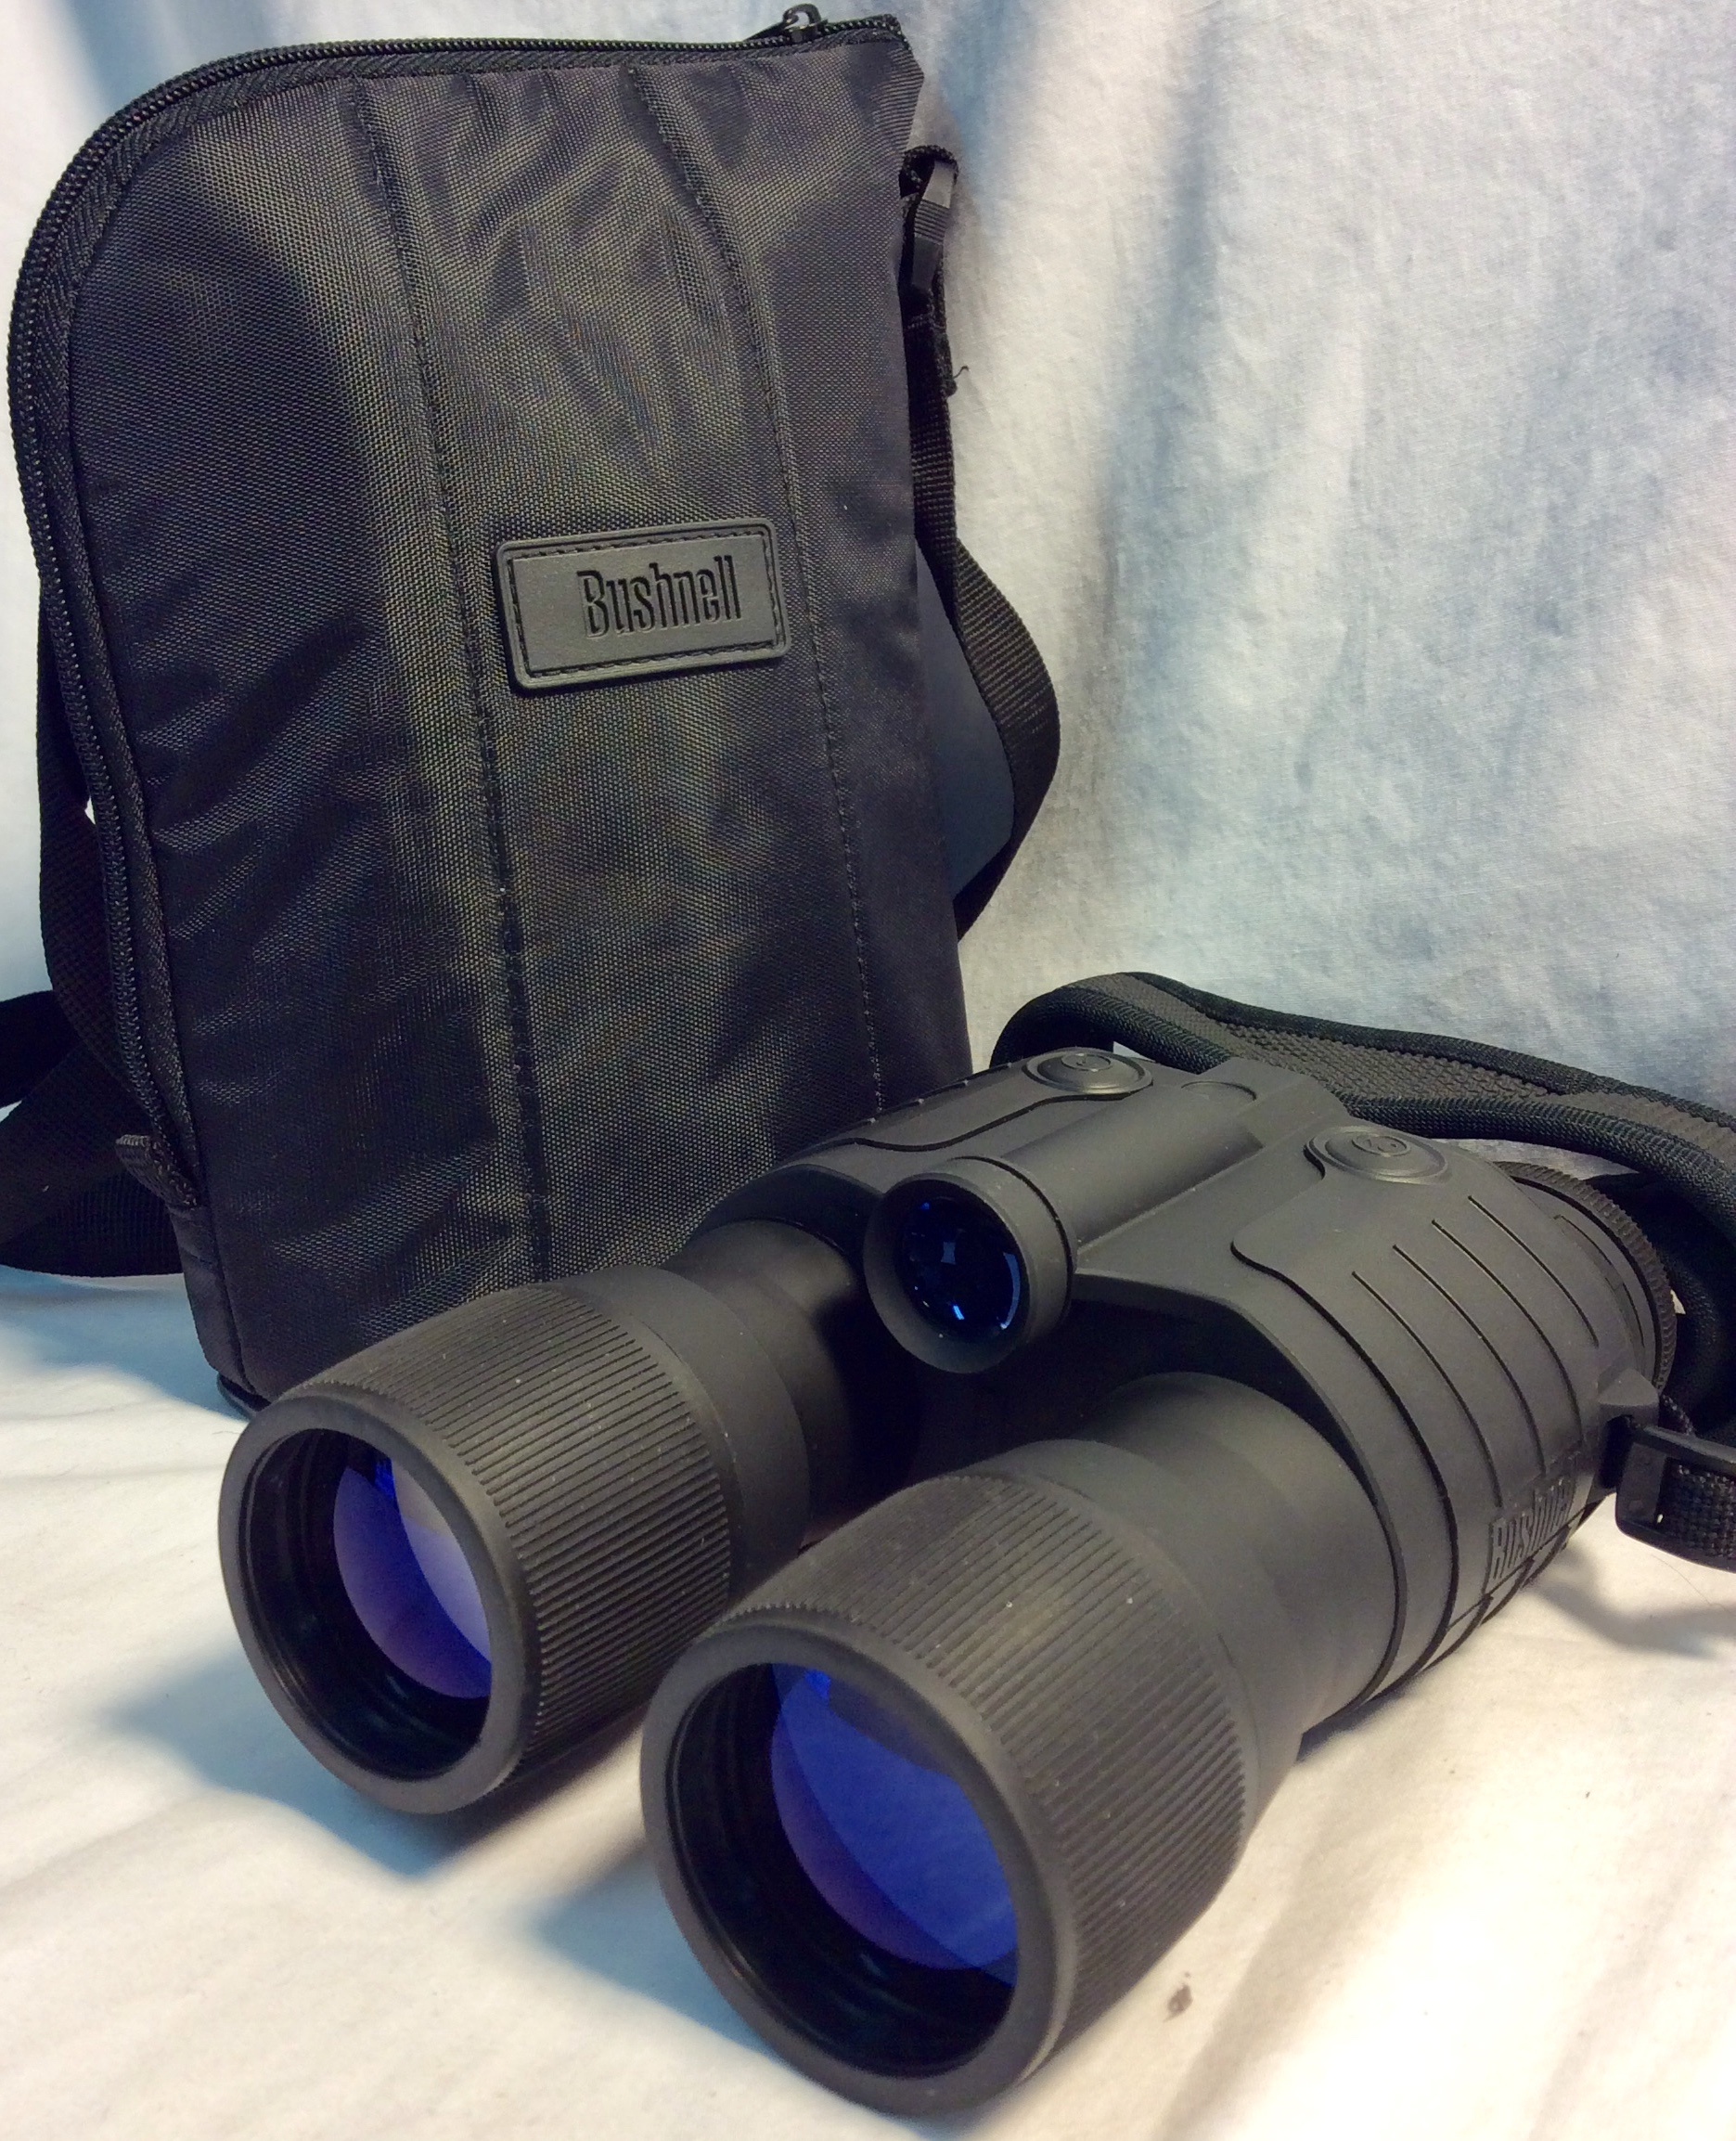 Bushnell binocular, black with strap and case